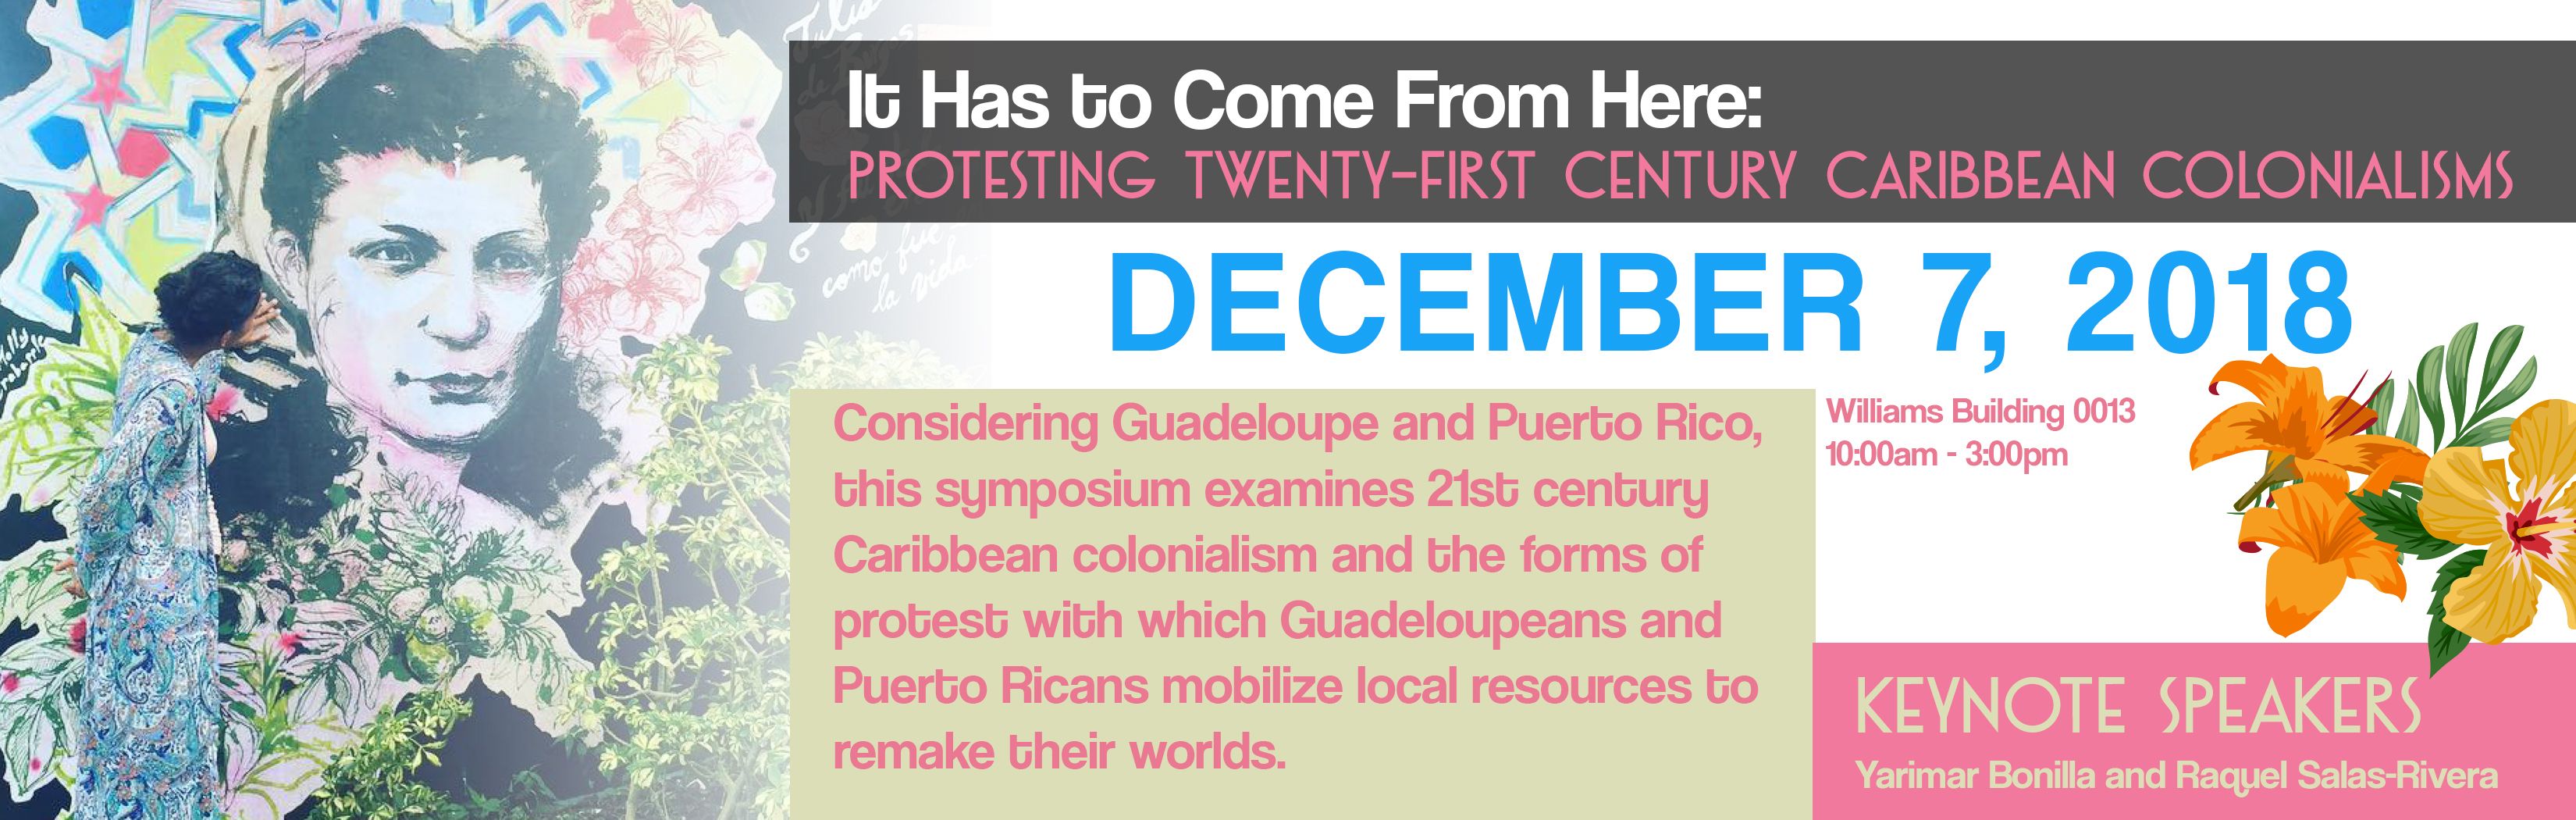 This day-long symposium takes the case studies of Guadeloupe and Puerto Rico to examine twenty-first century Caribbean colonialism. We will discuss both contemporary colonial mechanisms, as well as the forms of protest through which Puerto Ricans and Guadeloupe mobilize their local resources and relations to remake their worlds.